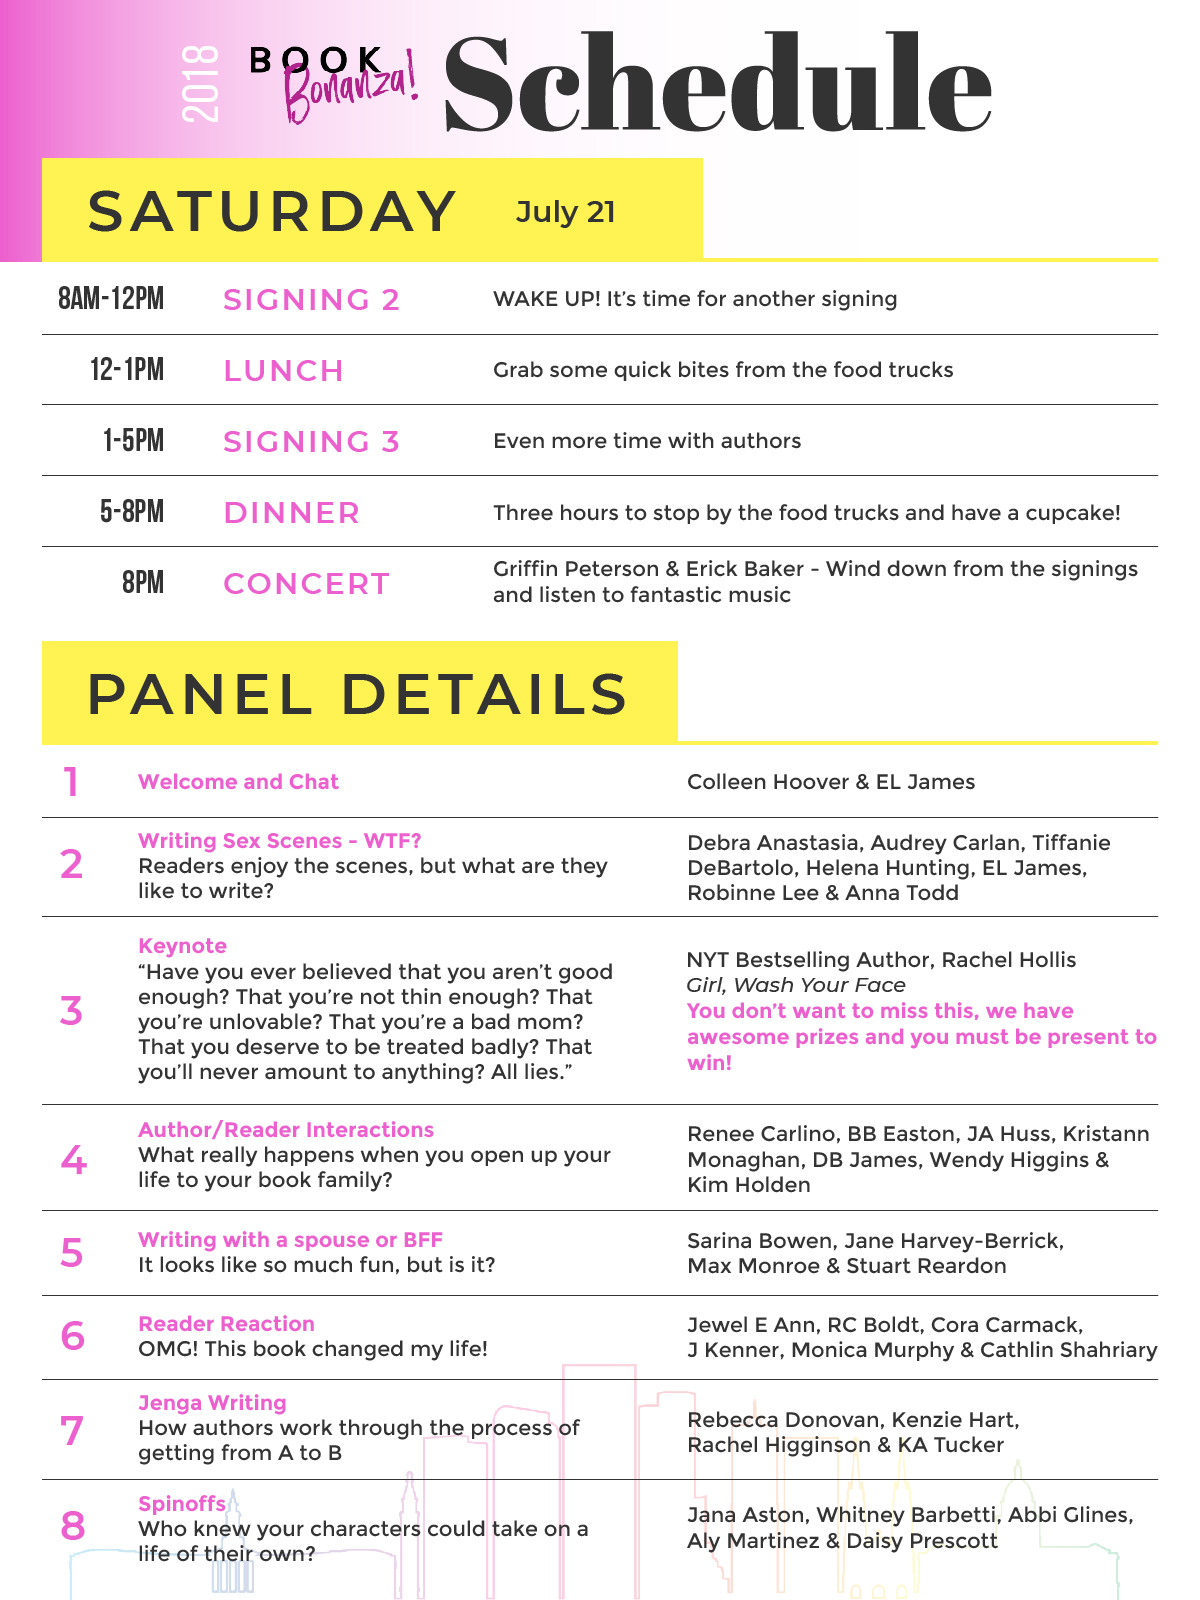 02 Book Bonanza 2018 Schedule Saturday and Panel Details%0D%0A (3).jpg